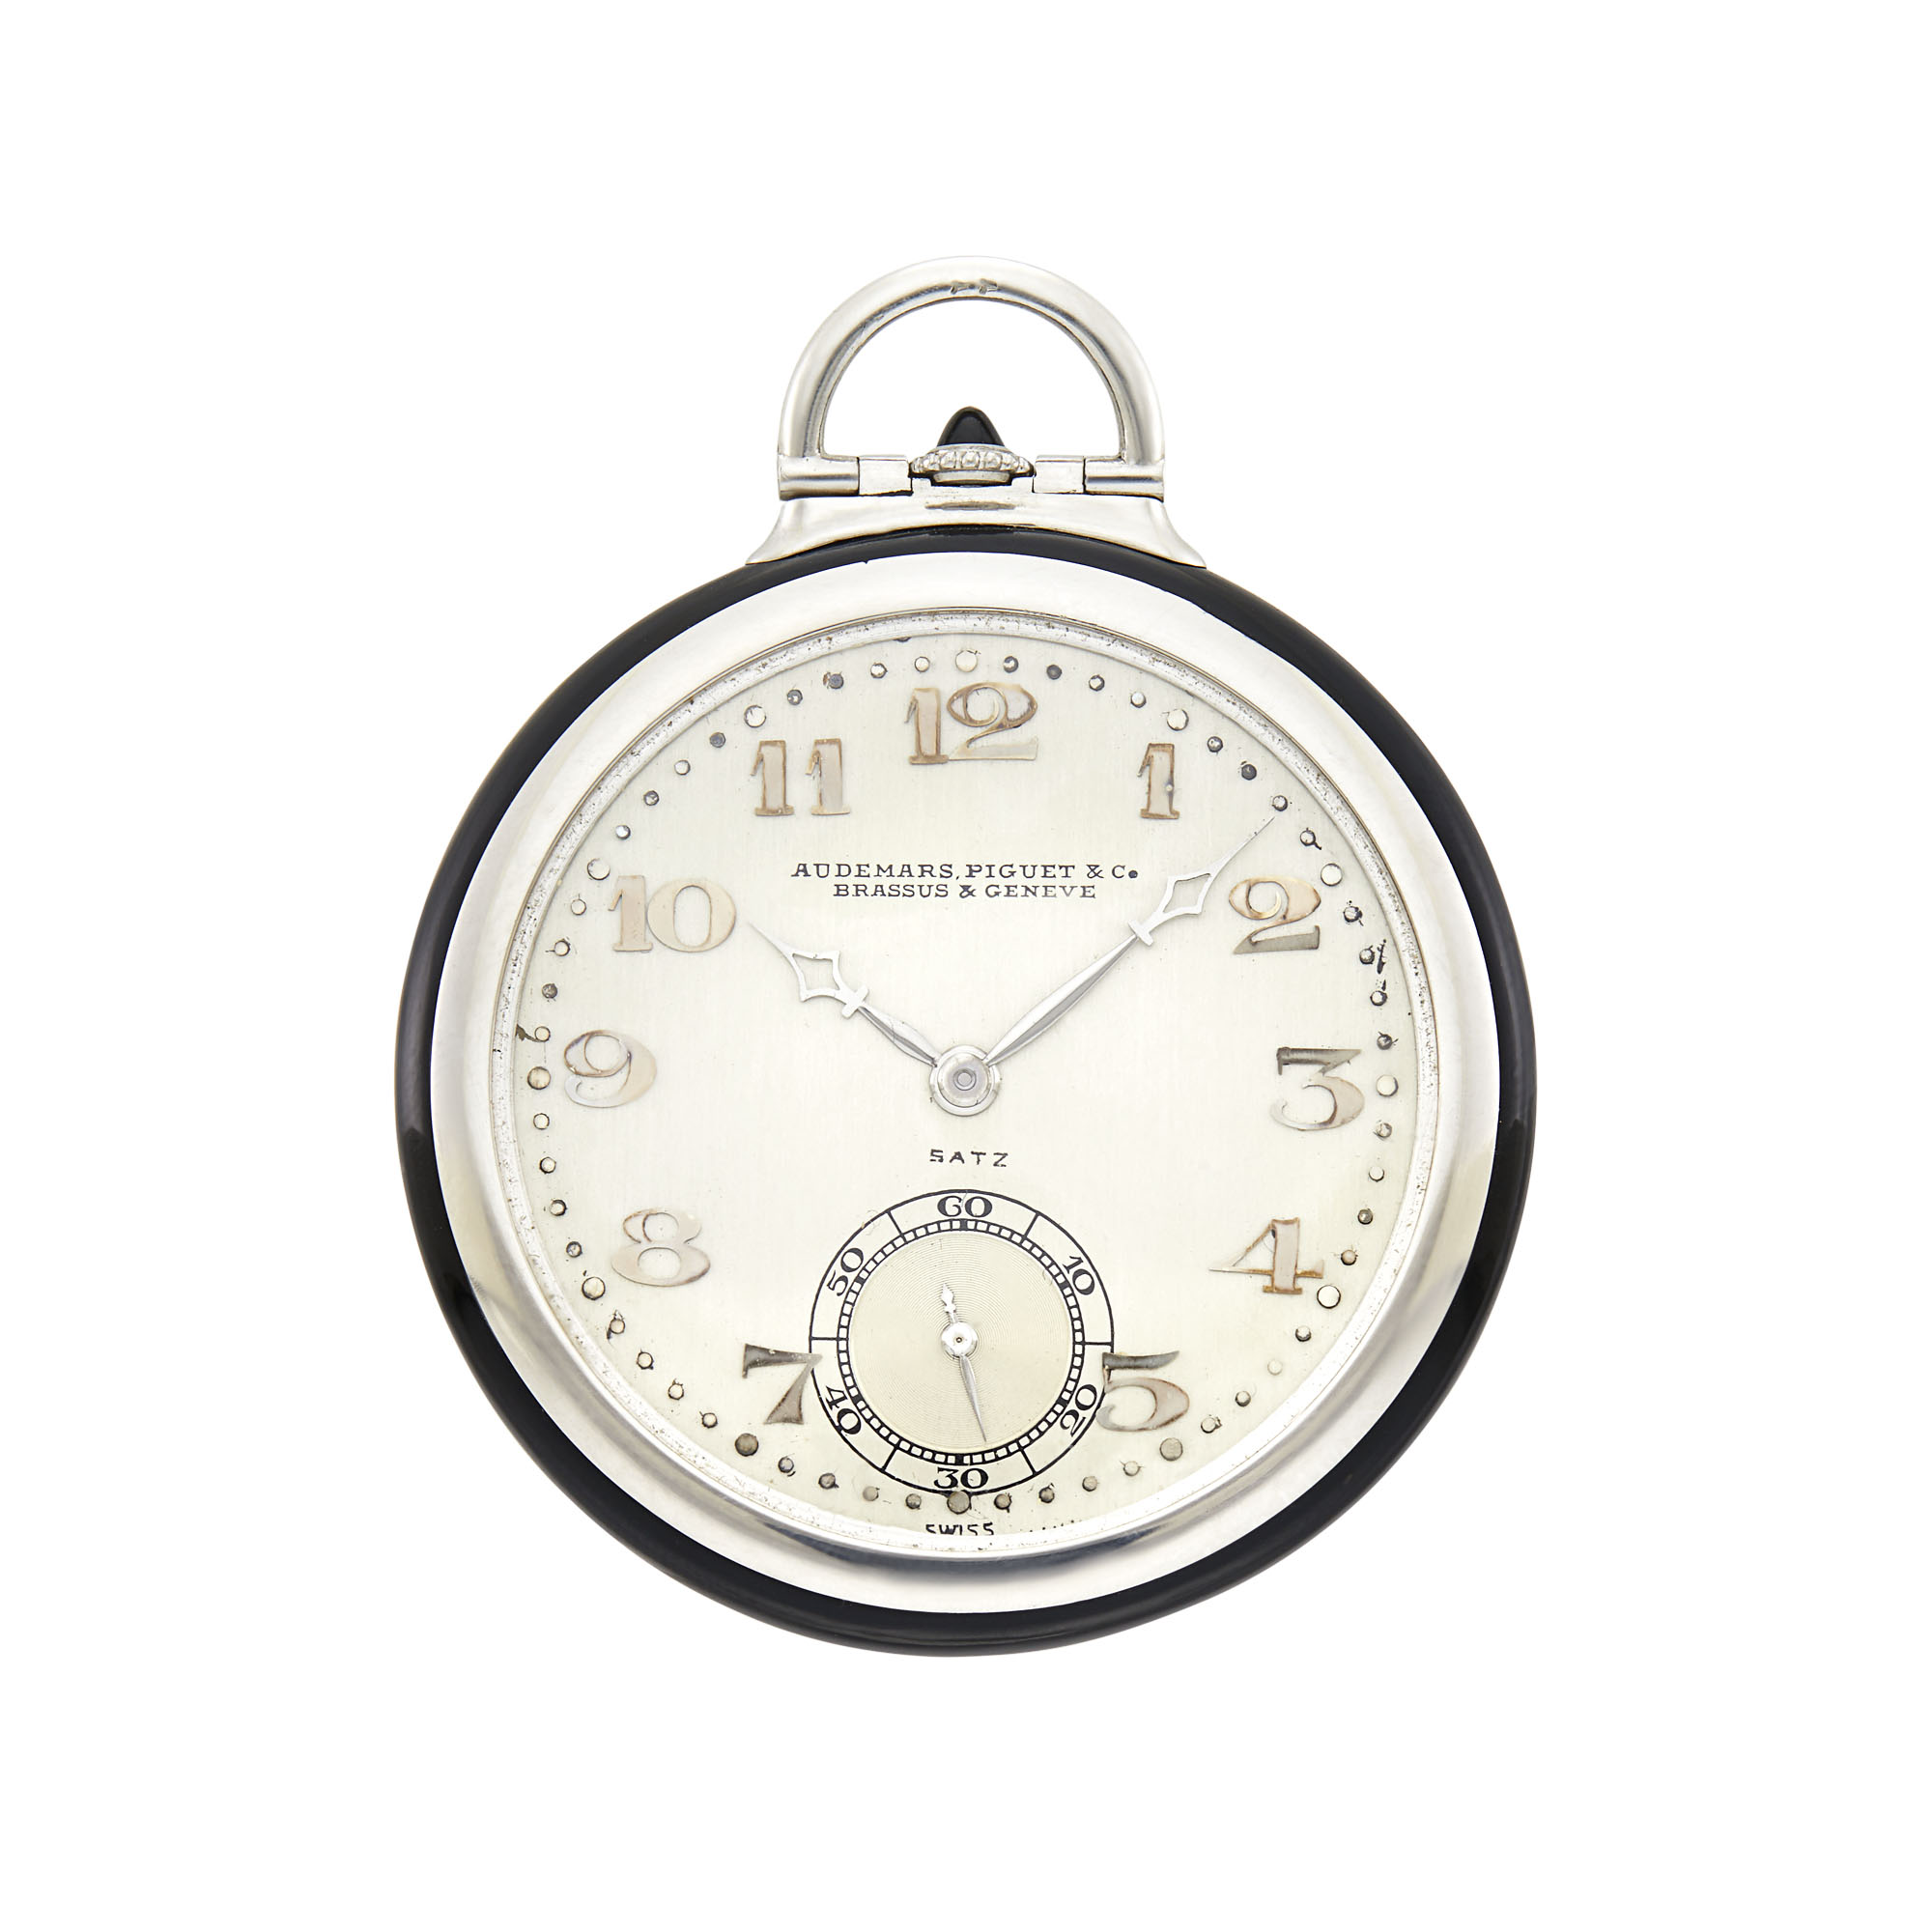 Lot image - Audemars Piguet Art Deco Platinum, Black Enamel and Diamond Open Face Pocket Watch